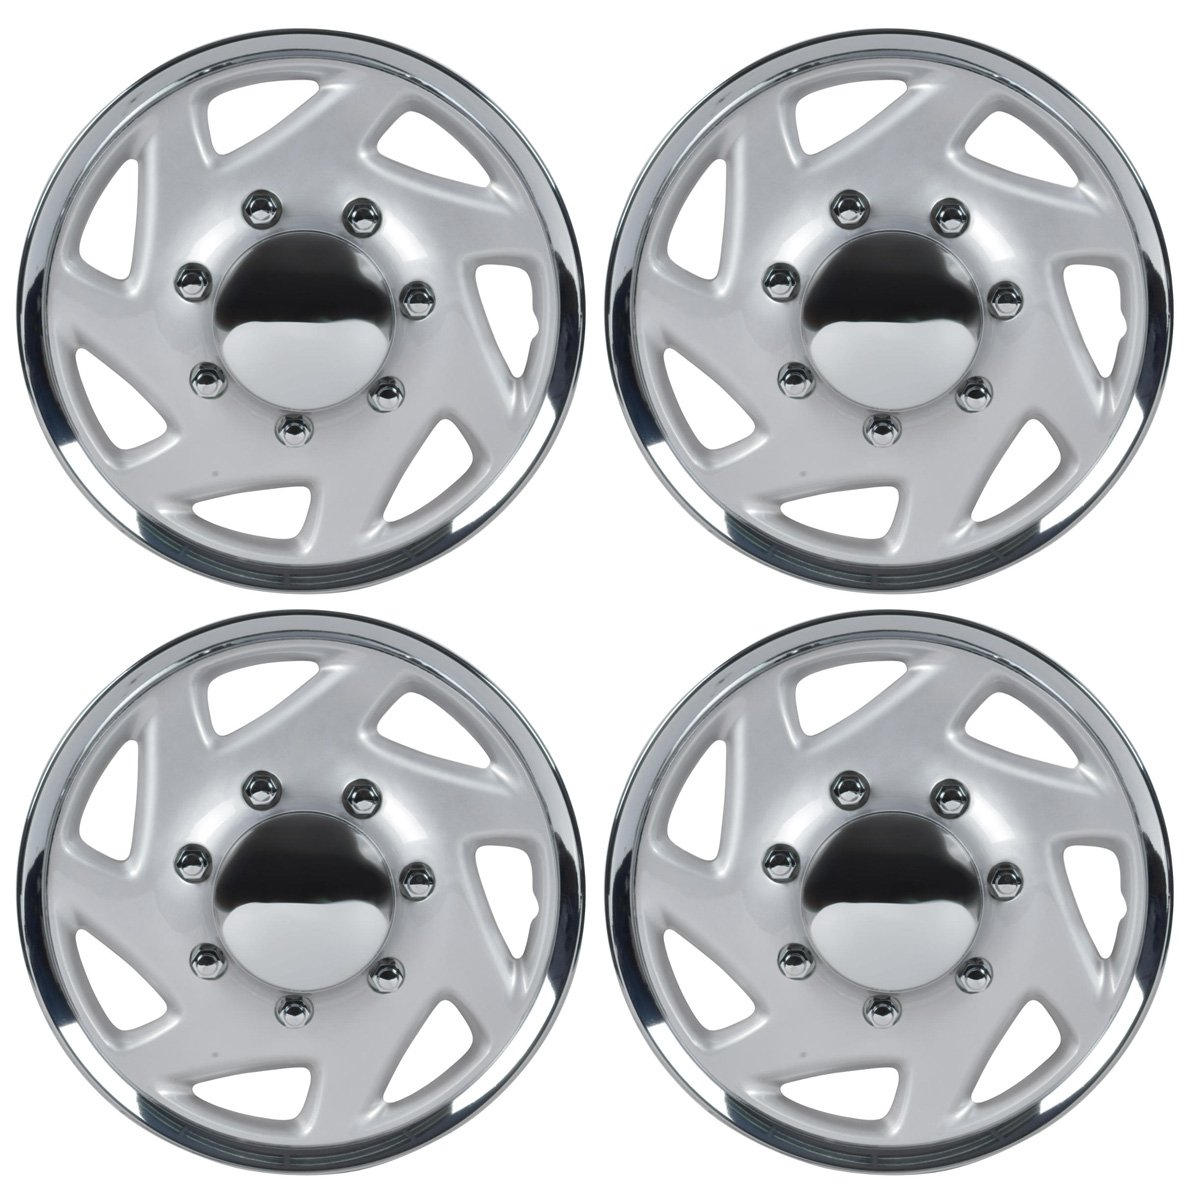 <strong>BDK Hubcaps Wheel Covers</strong>